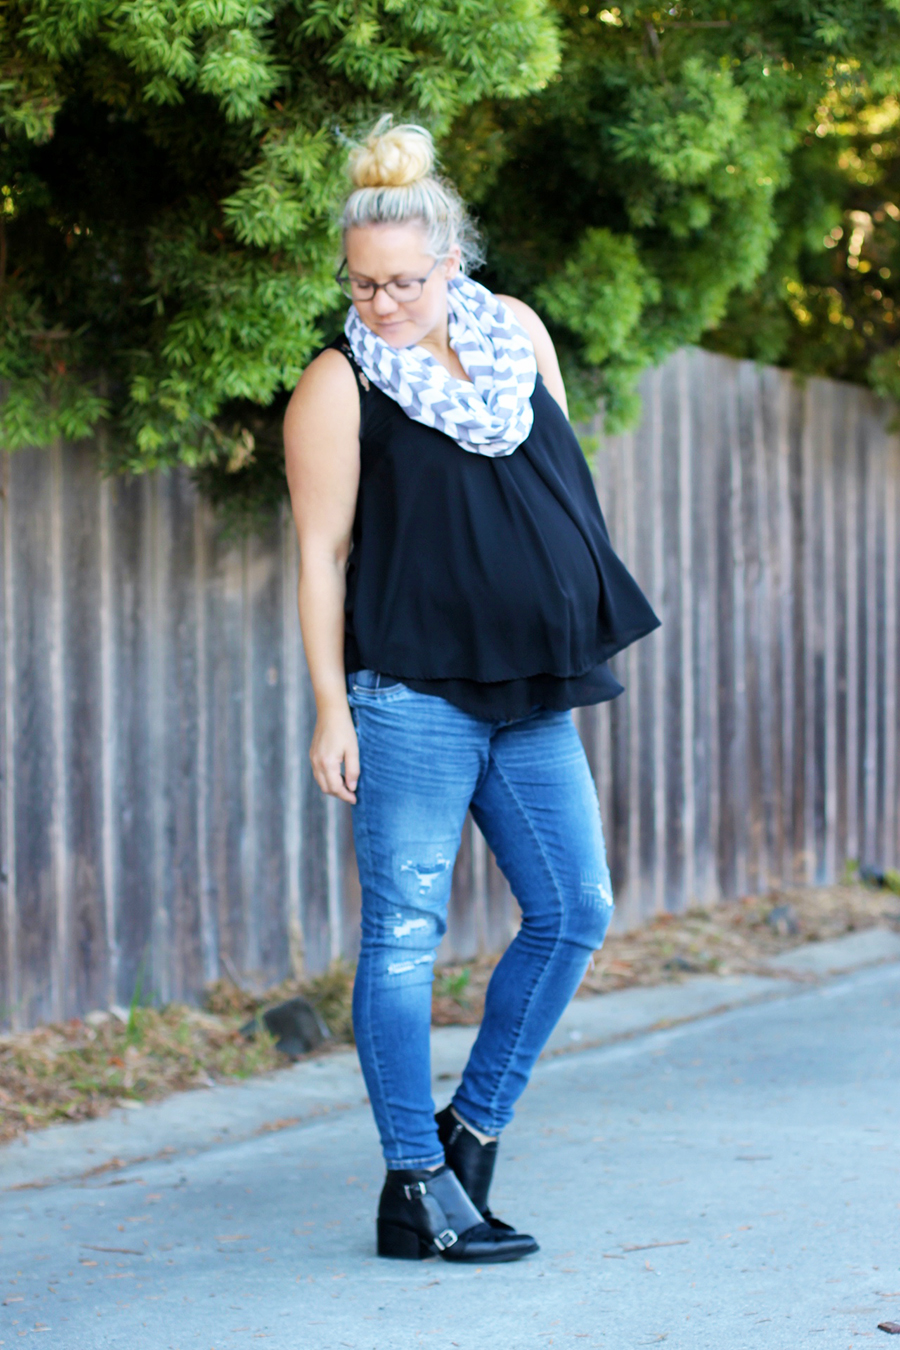 Le Tote Maternity-Maternity Style-Pregnancy Style-Maternity Subscription Box 8